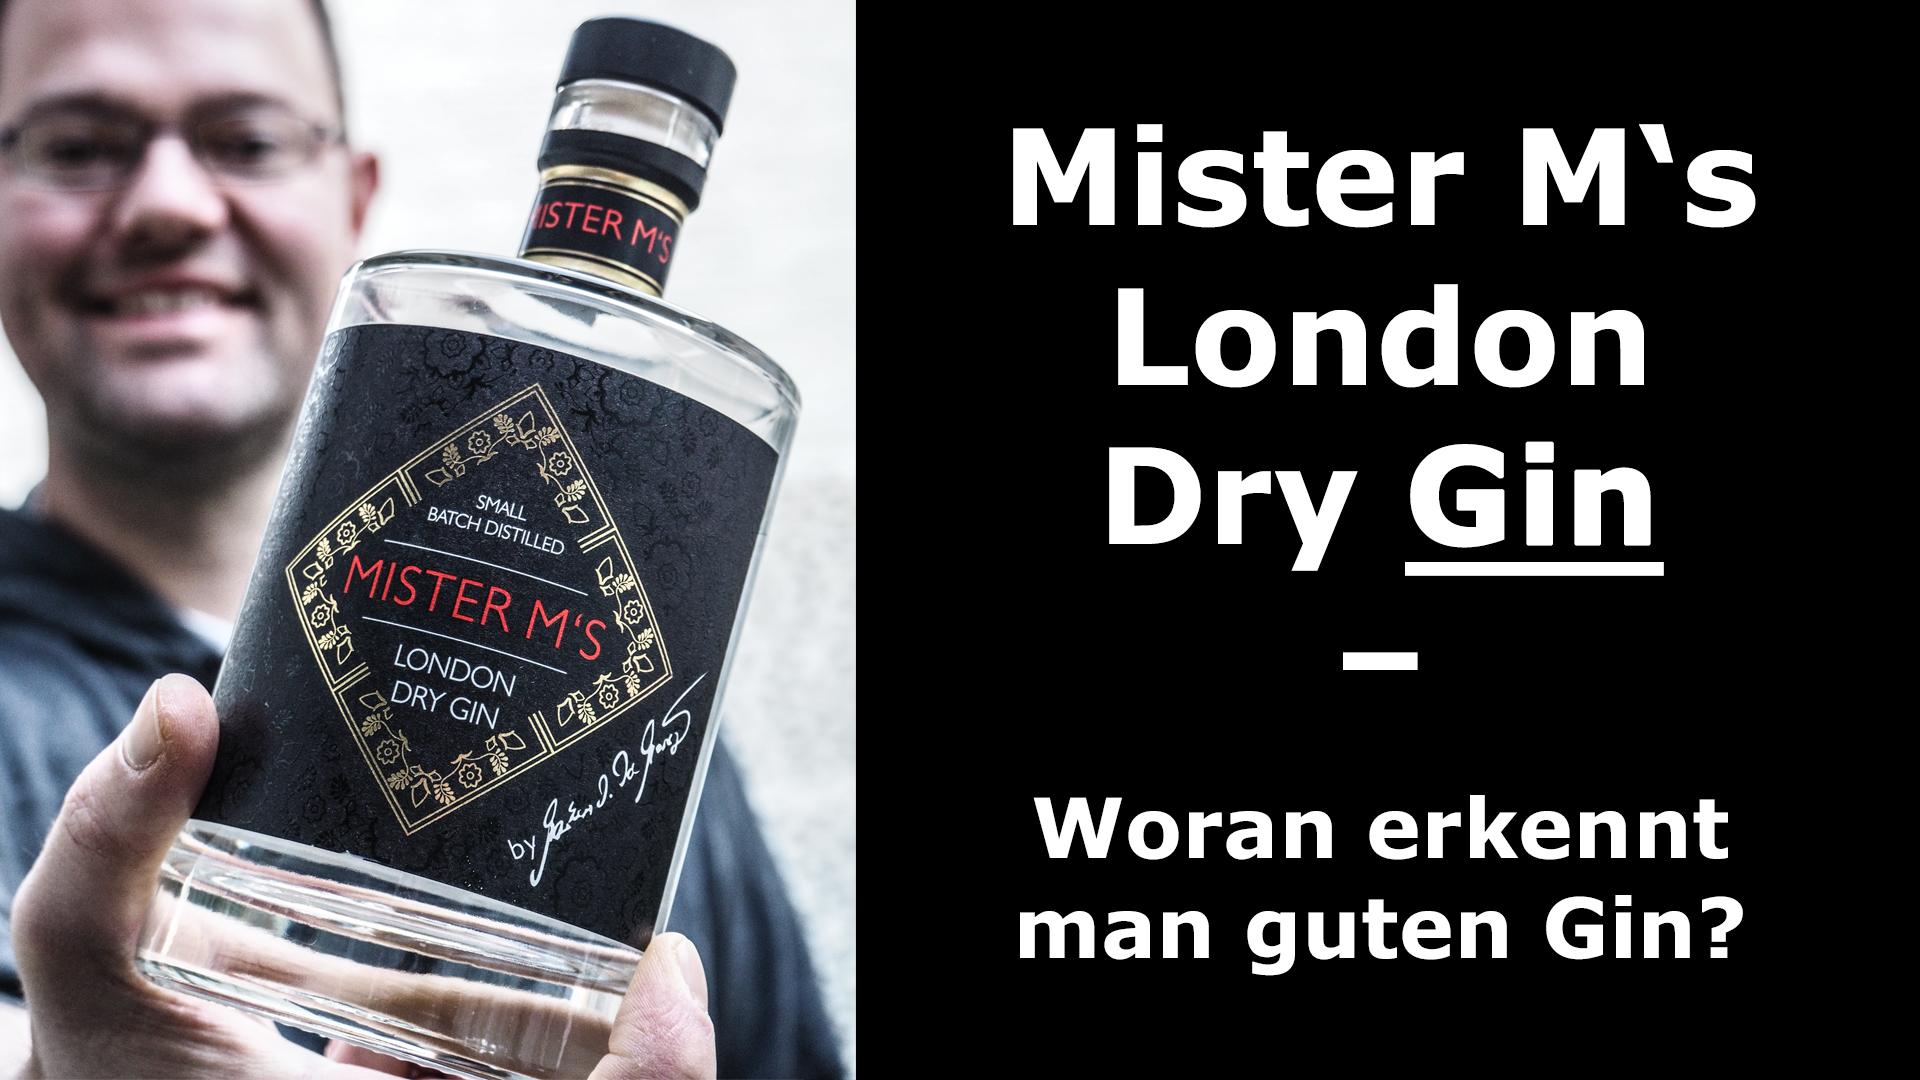 Mister M's London Dry Gin